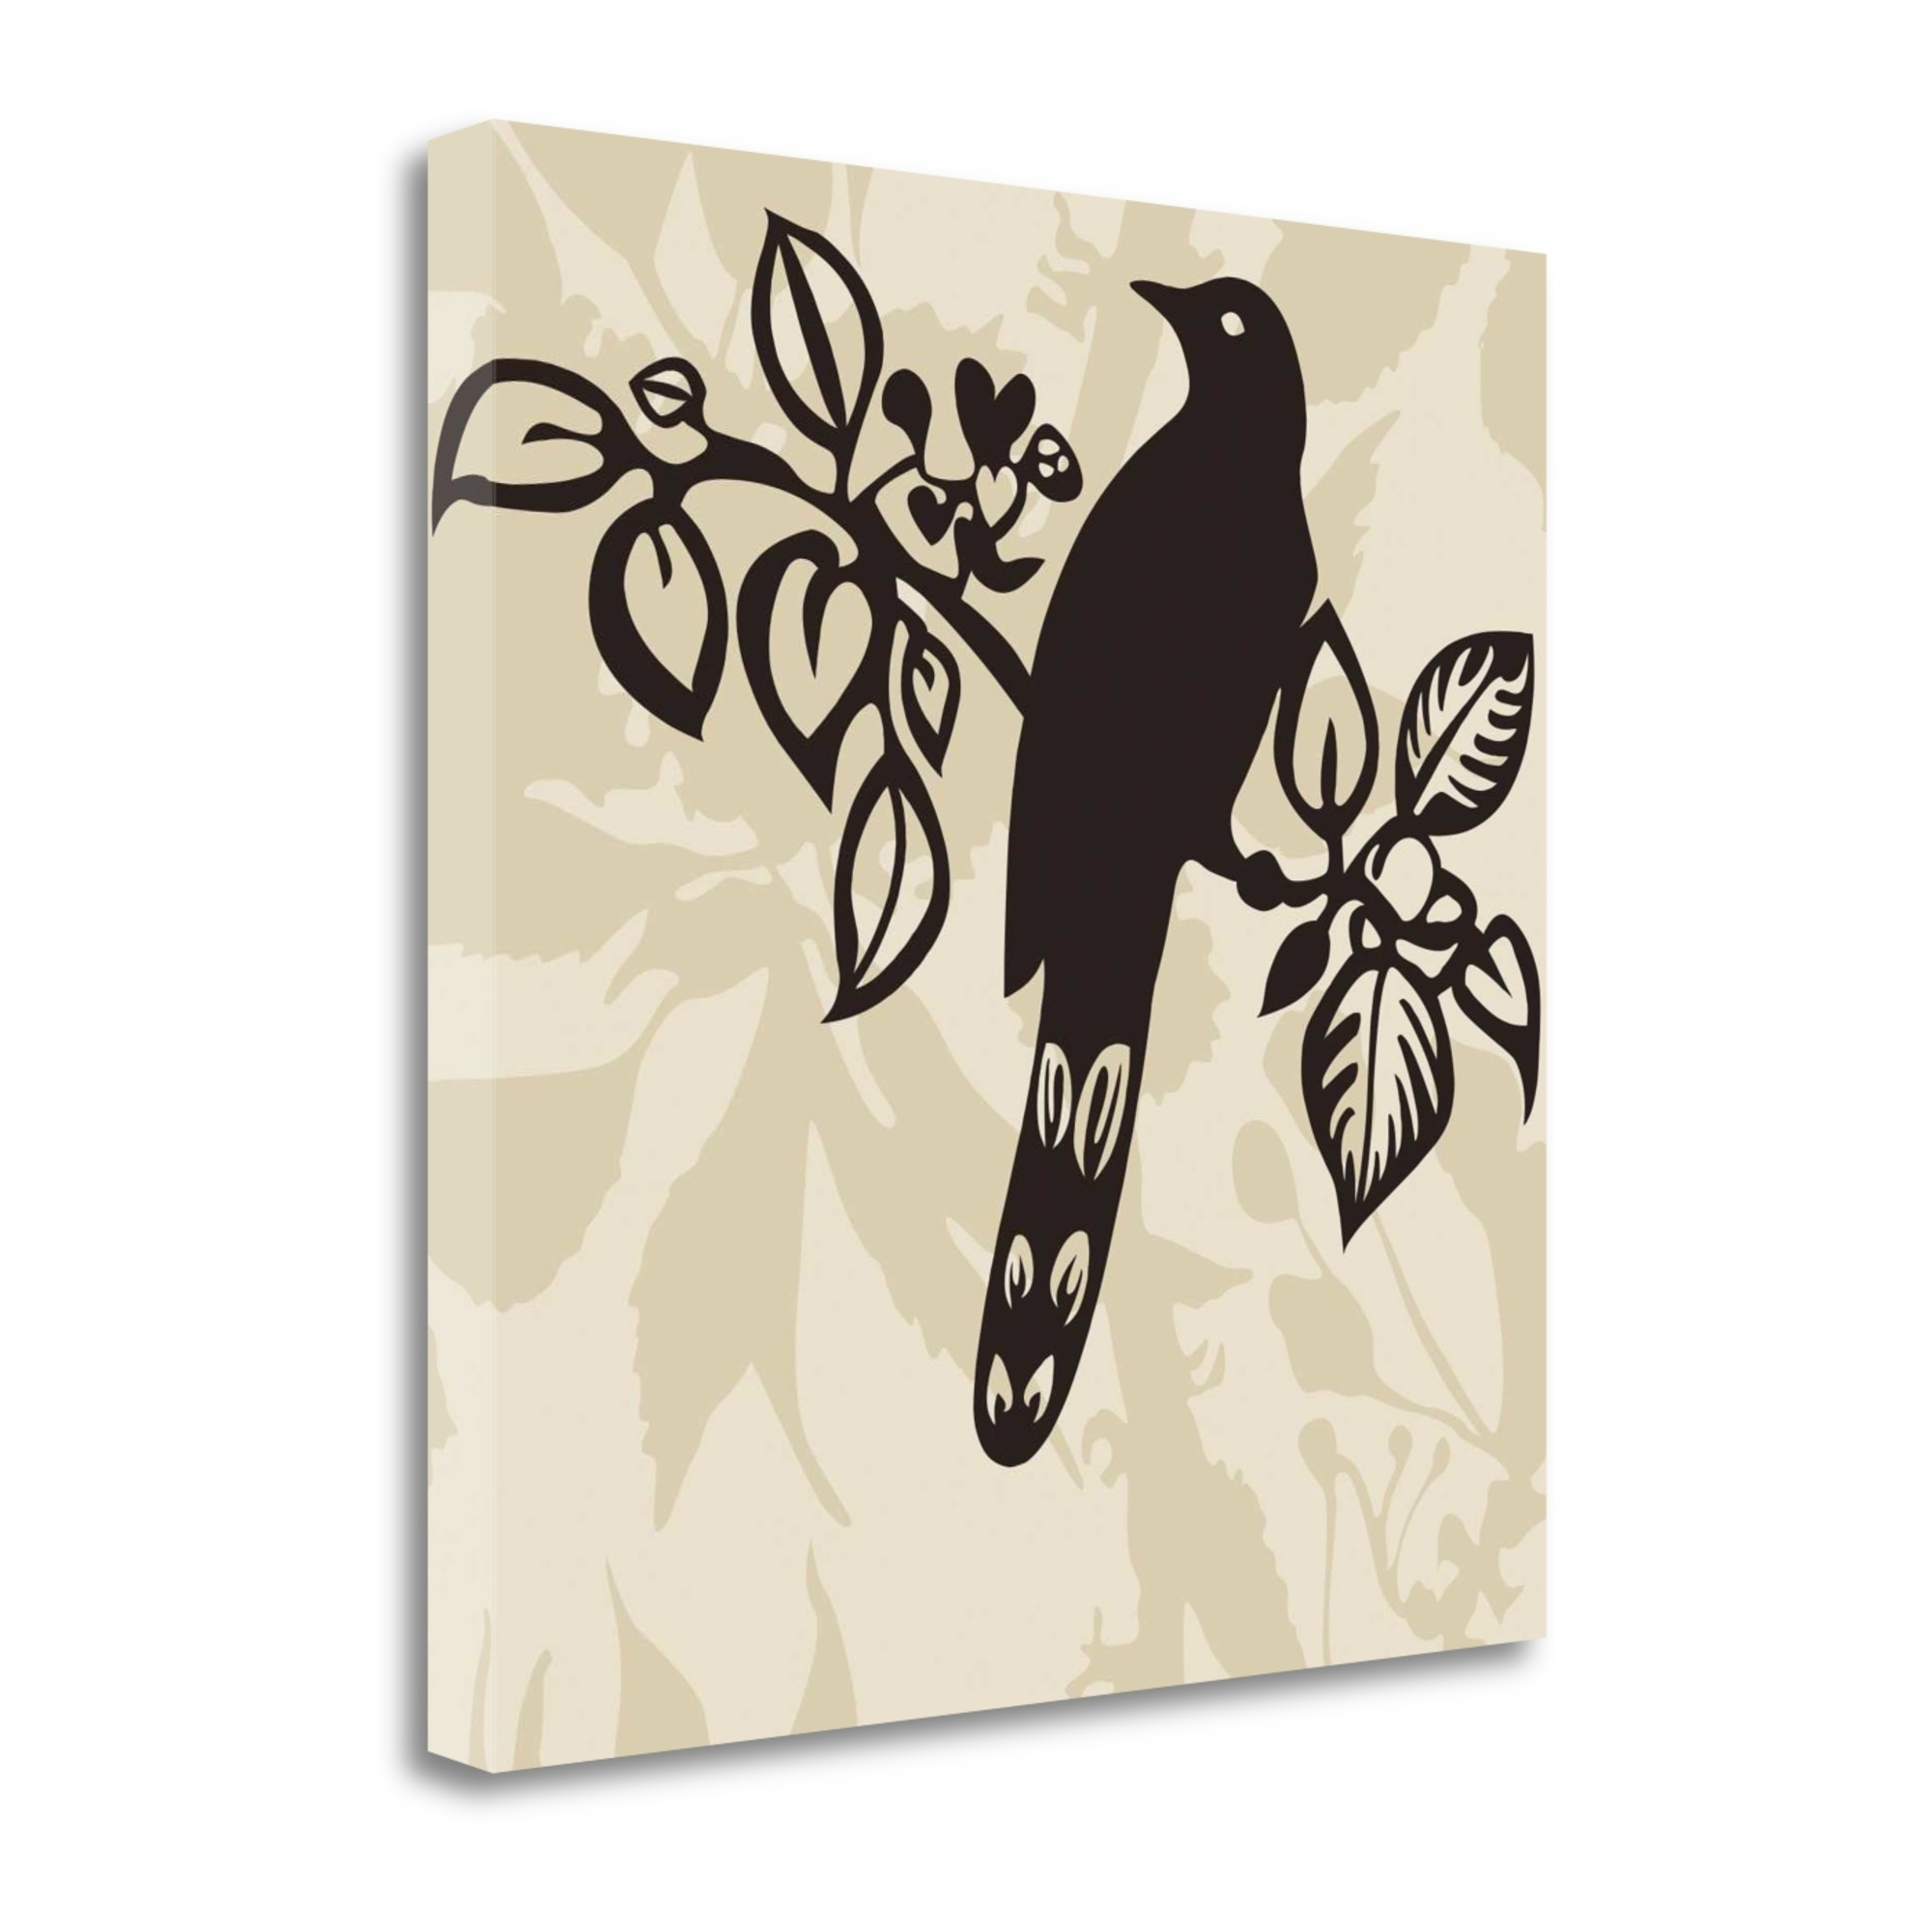 "Song Bird 1 By Jette Svane, 20"" x 20\"" Fine Art Giclee Print on Gallery Wrap Canvas, Ready to Hang"